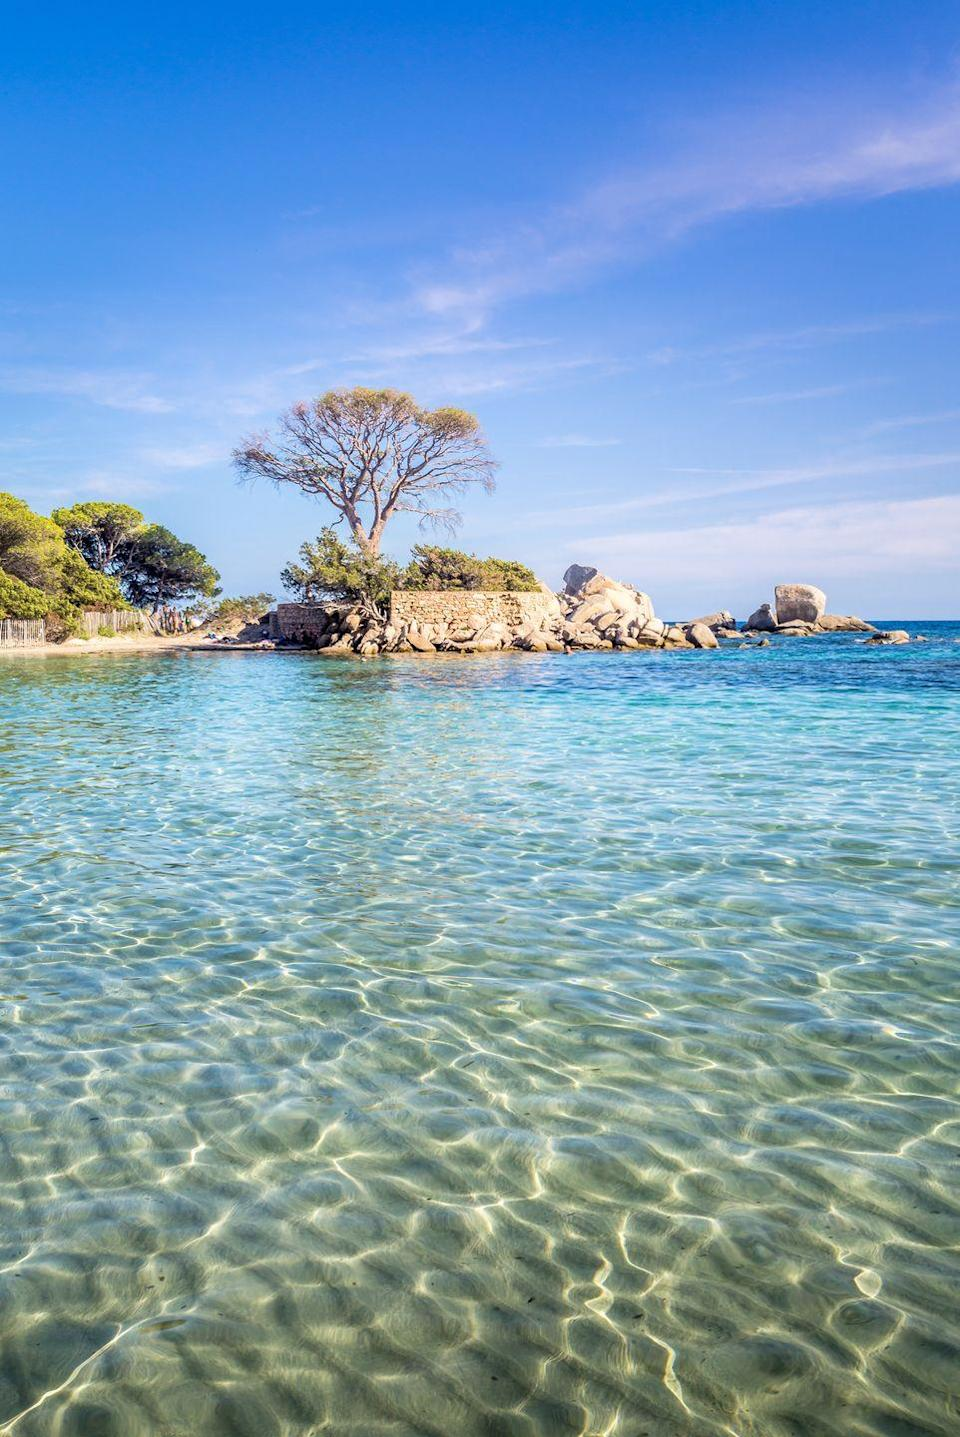 """<p>Geographically closer to Italy, this French island has a little bit of everything. According to <a href=""""https://www.cntraveller.com/article/travel-guide-corsica"""" rel=""""nofollow noopener"""" target=""""_blank"""" data-ylk=""""slk:CN Traveler"""" class=""""link rapid-noclick-resp"""">CN Traveler</a>, this is the island where Henry Matisse fell in love with color. Corsica is known for its amazing hiking trails in the lush, rugged nature reserve (cyclists, rejoice!), but for those who'd prefer to hang out at sea level, there's plenty to do, from snorkeling to sunning and swimming. So outdoor adventure-seekers will especially love it.</p>"""